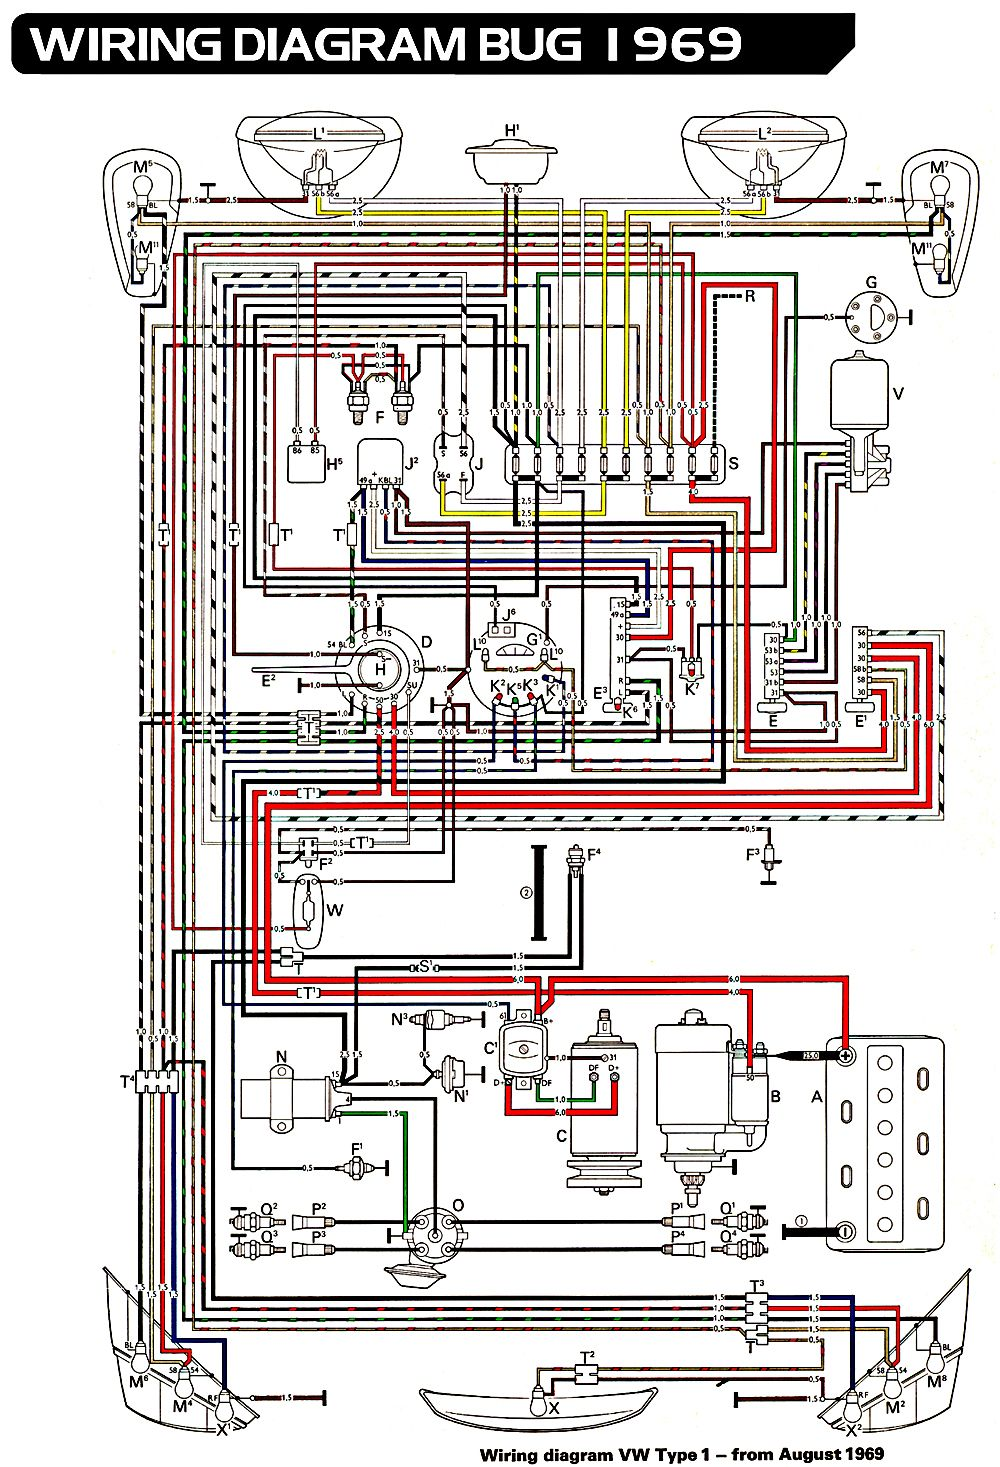 6d75c15875479254f26a32a8499d9044 volkswagen beetle wiring diagram 1966 vw beetle wiring vw bug wiring diagram at cos-gaming.co